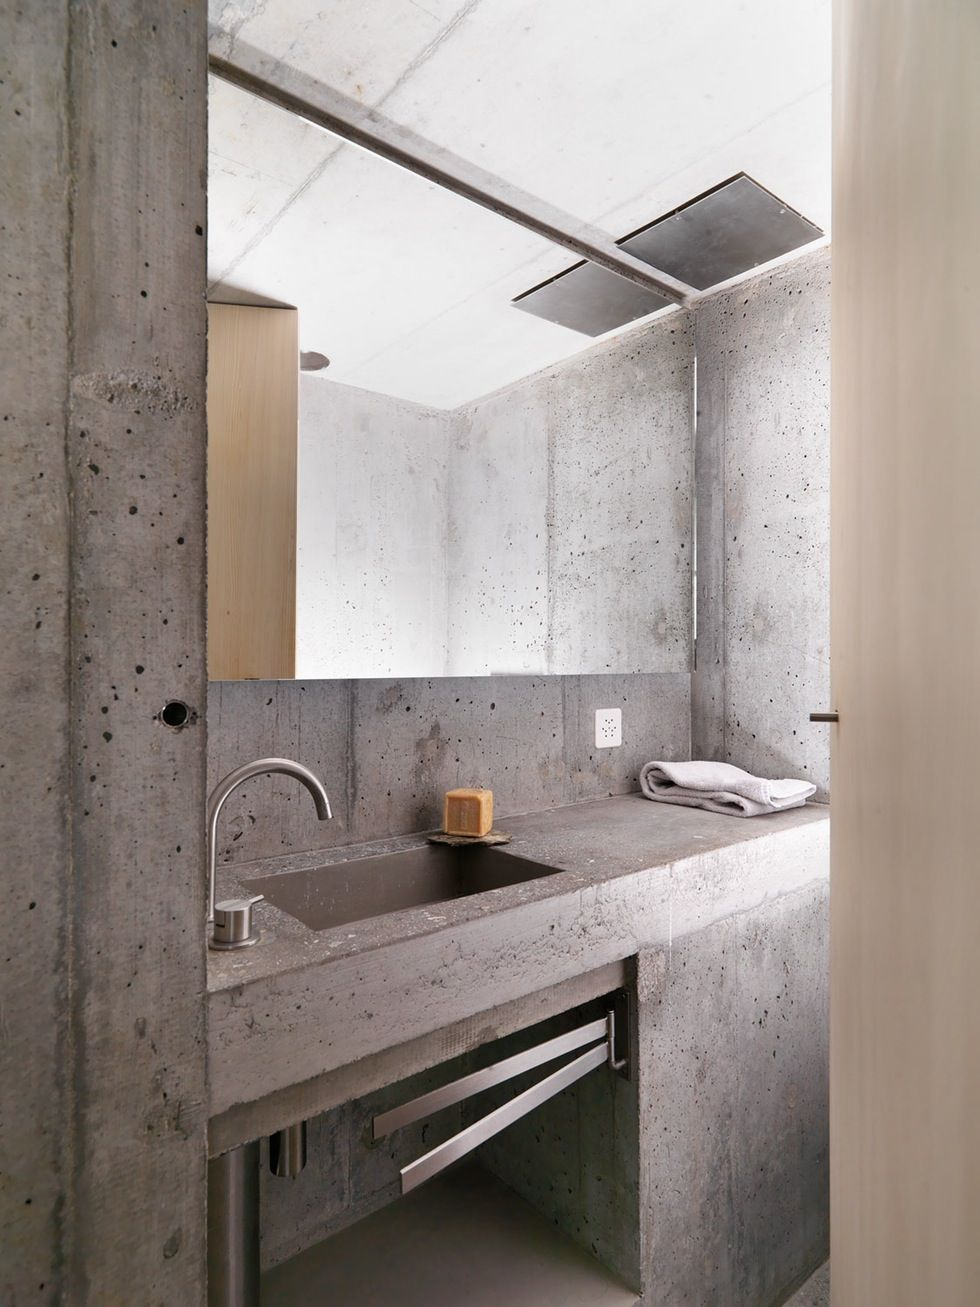 modern bathroom inspiration bycocooncom raw concrete sink bathroom design products inox - Stainless Steel Hotel Design